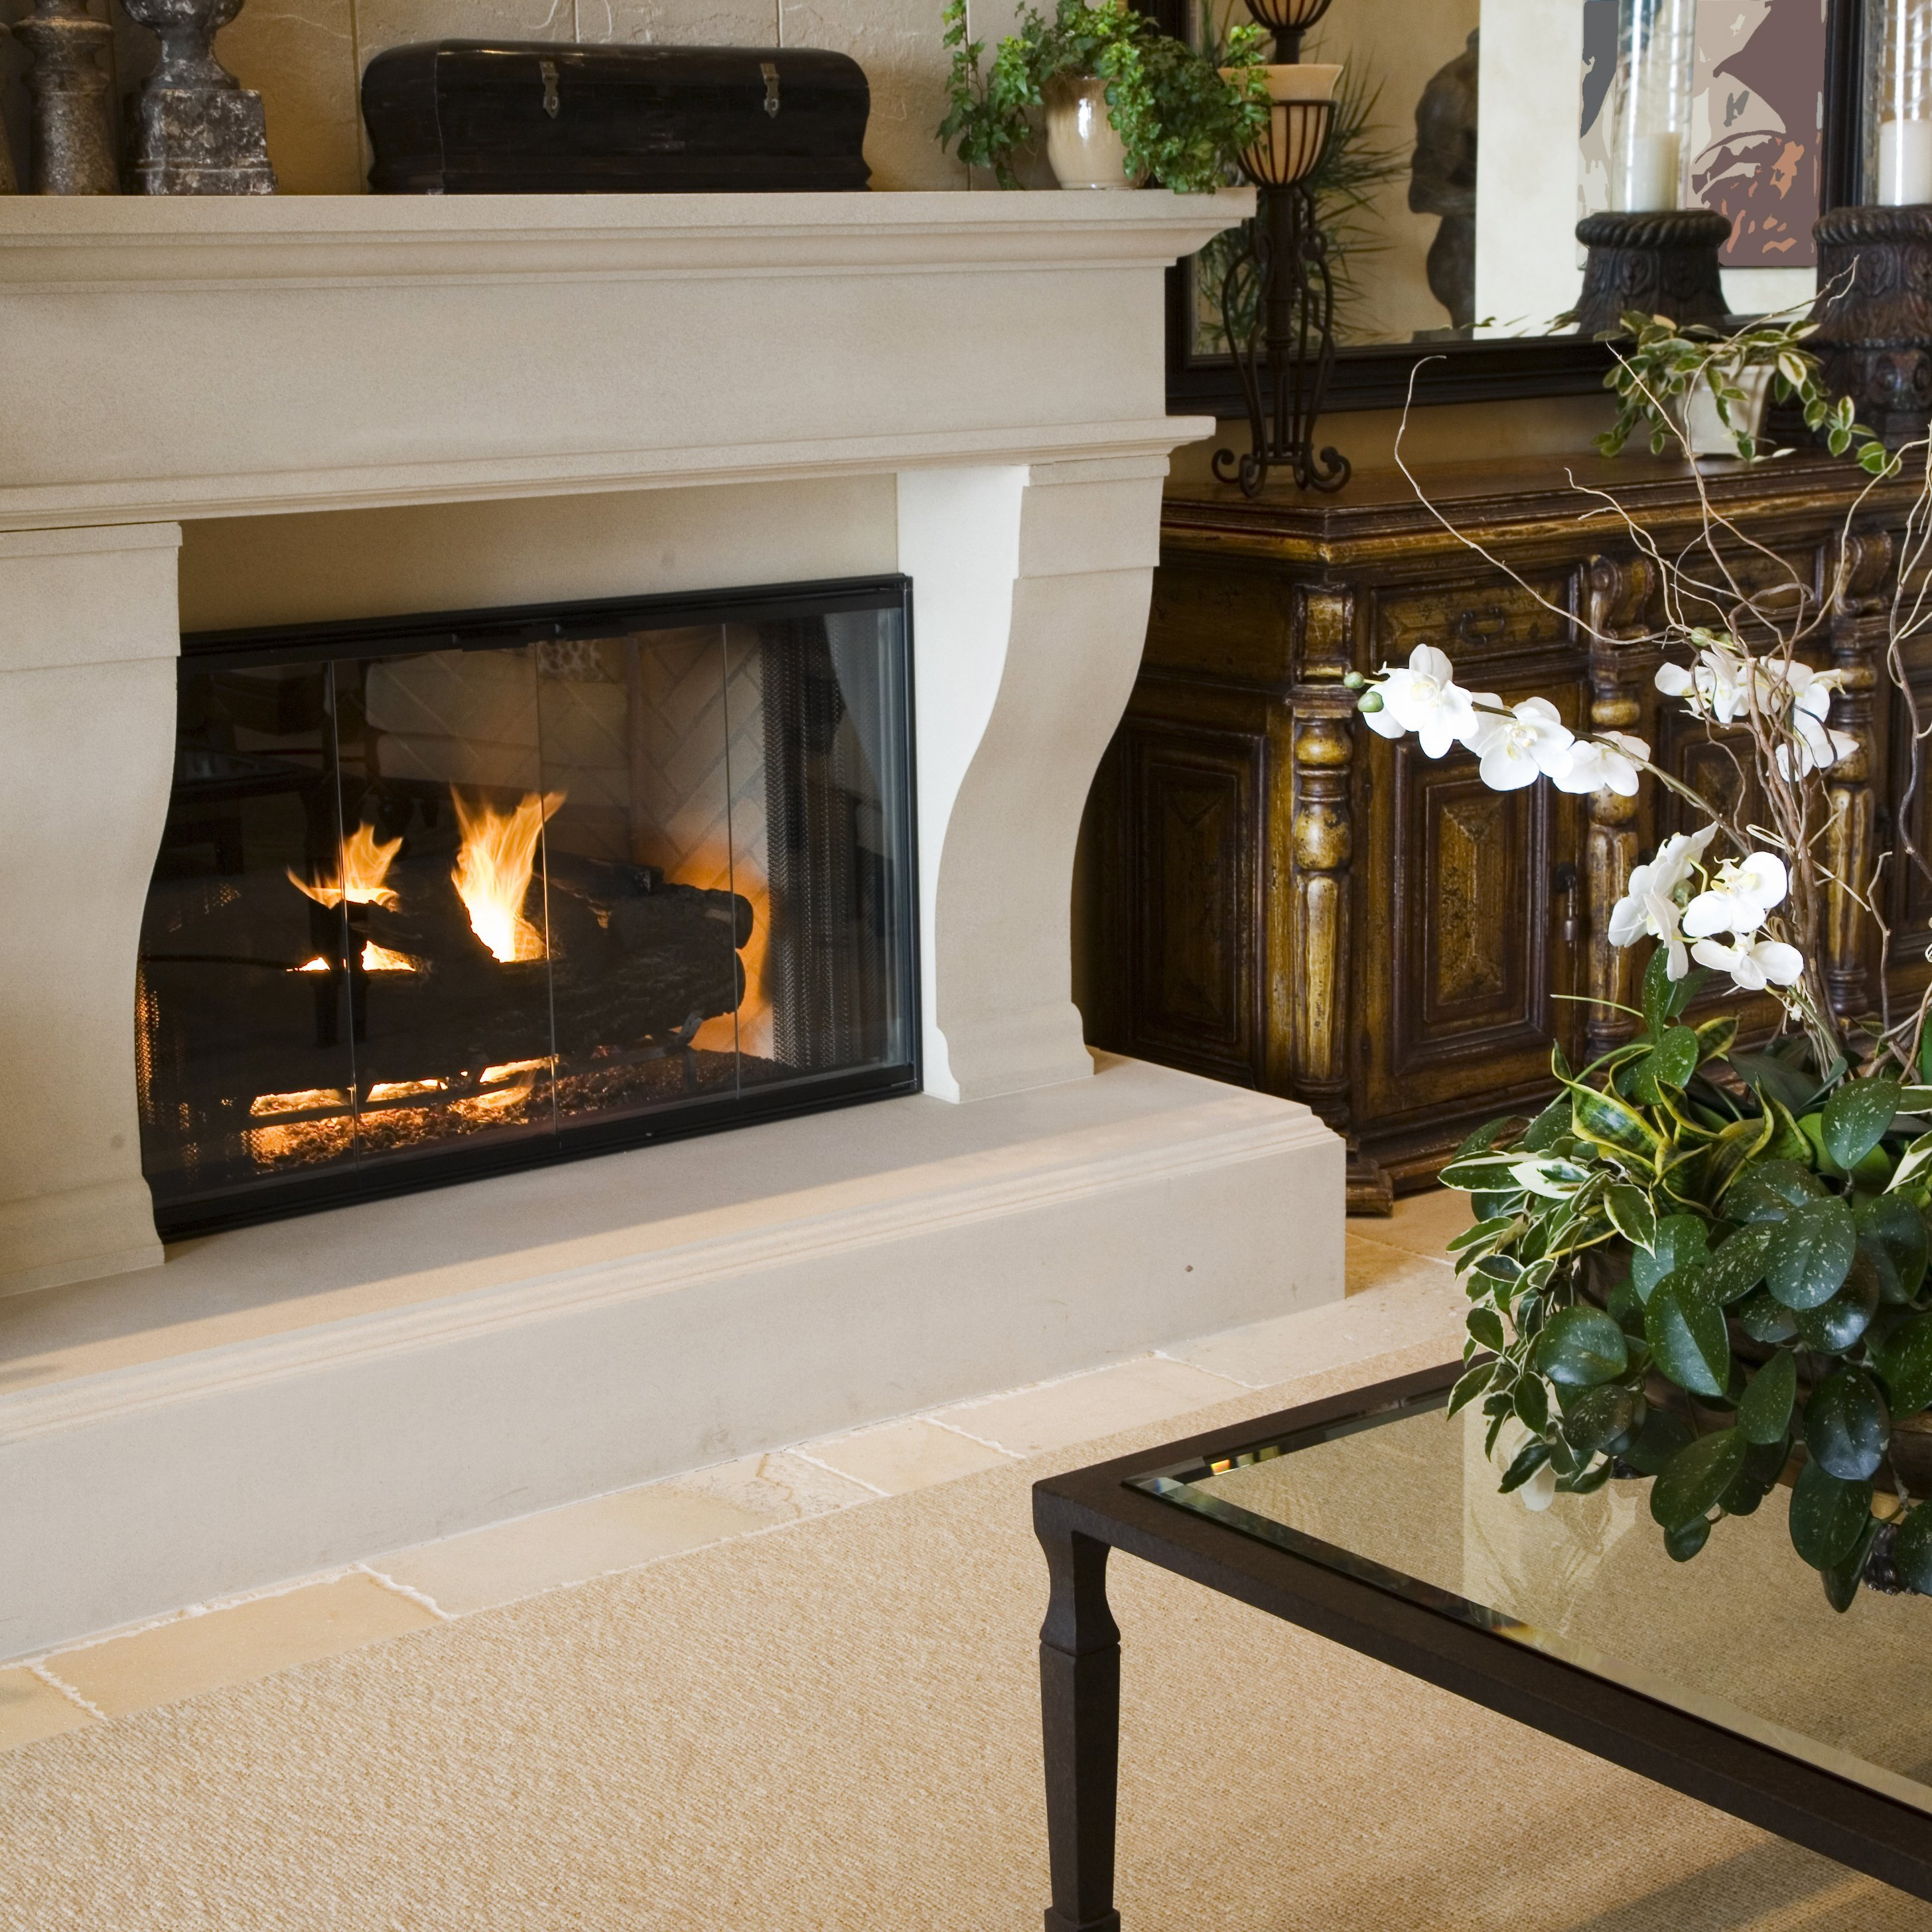 adobe fireplace amazing fireplace design by sunwood design uamp